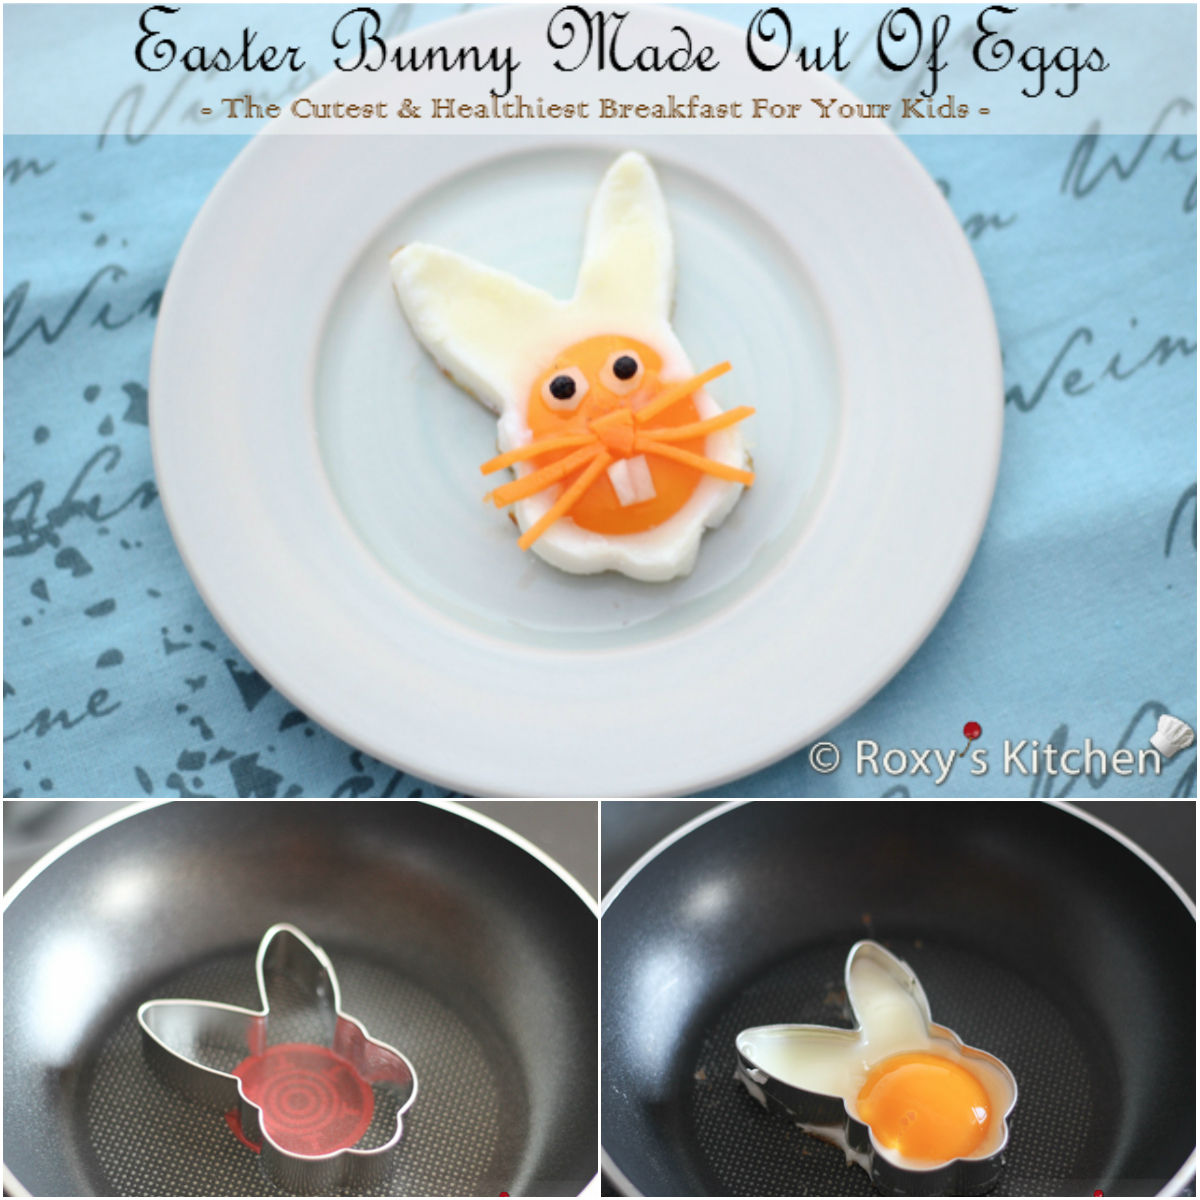 Easter Bunny Face Made Out Of Eggs: Cutest Breakfast for Kids - Roxy's Kitchen #funnyfood #foodart #Easter #breakfast